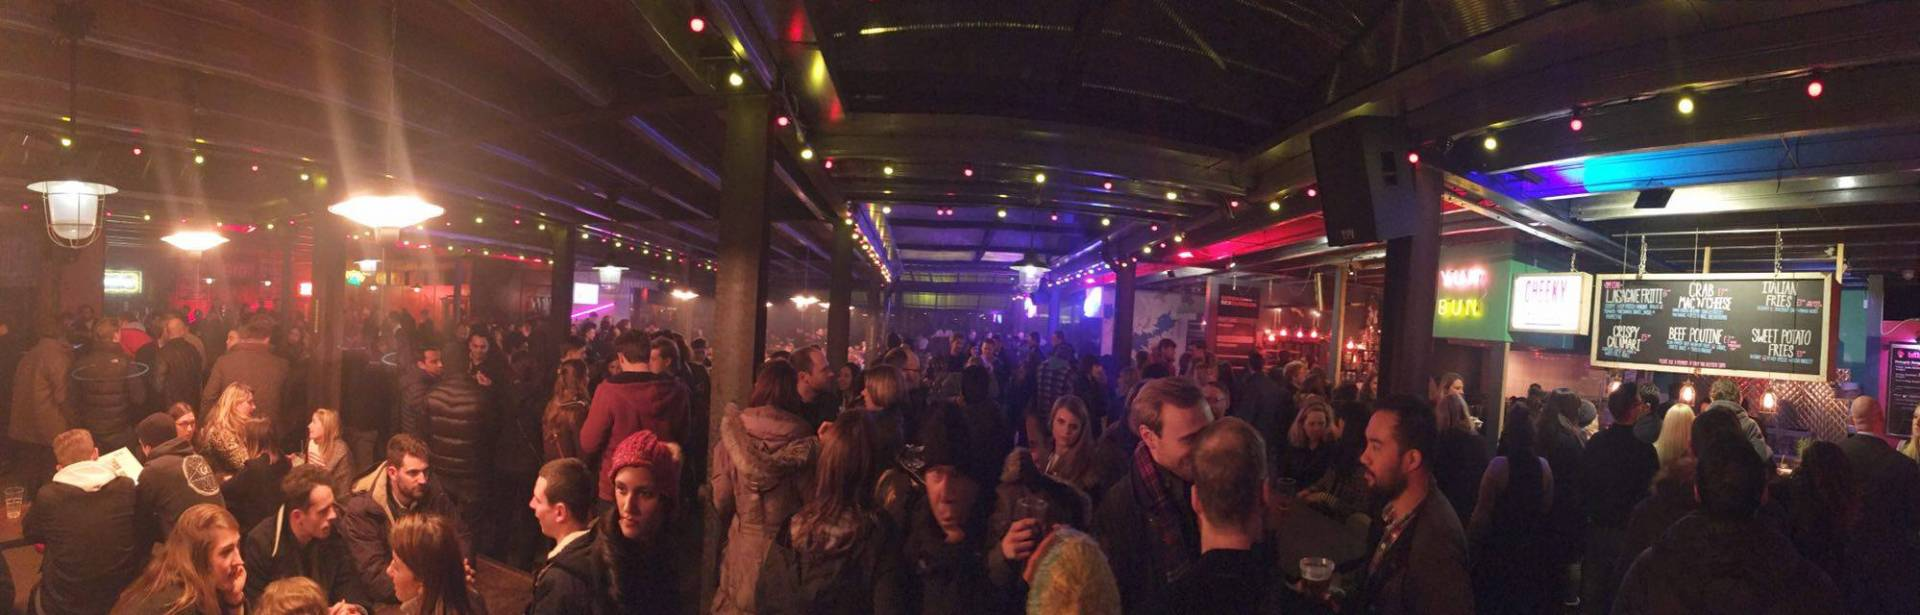 Dinerama - Shoreditch, London